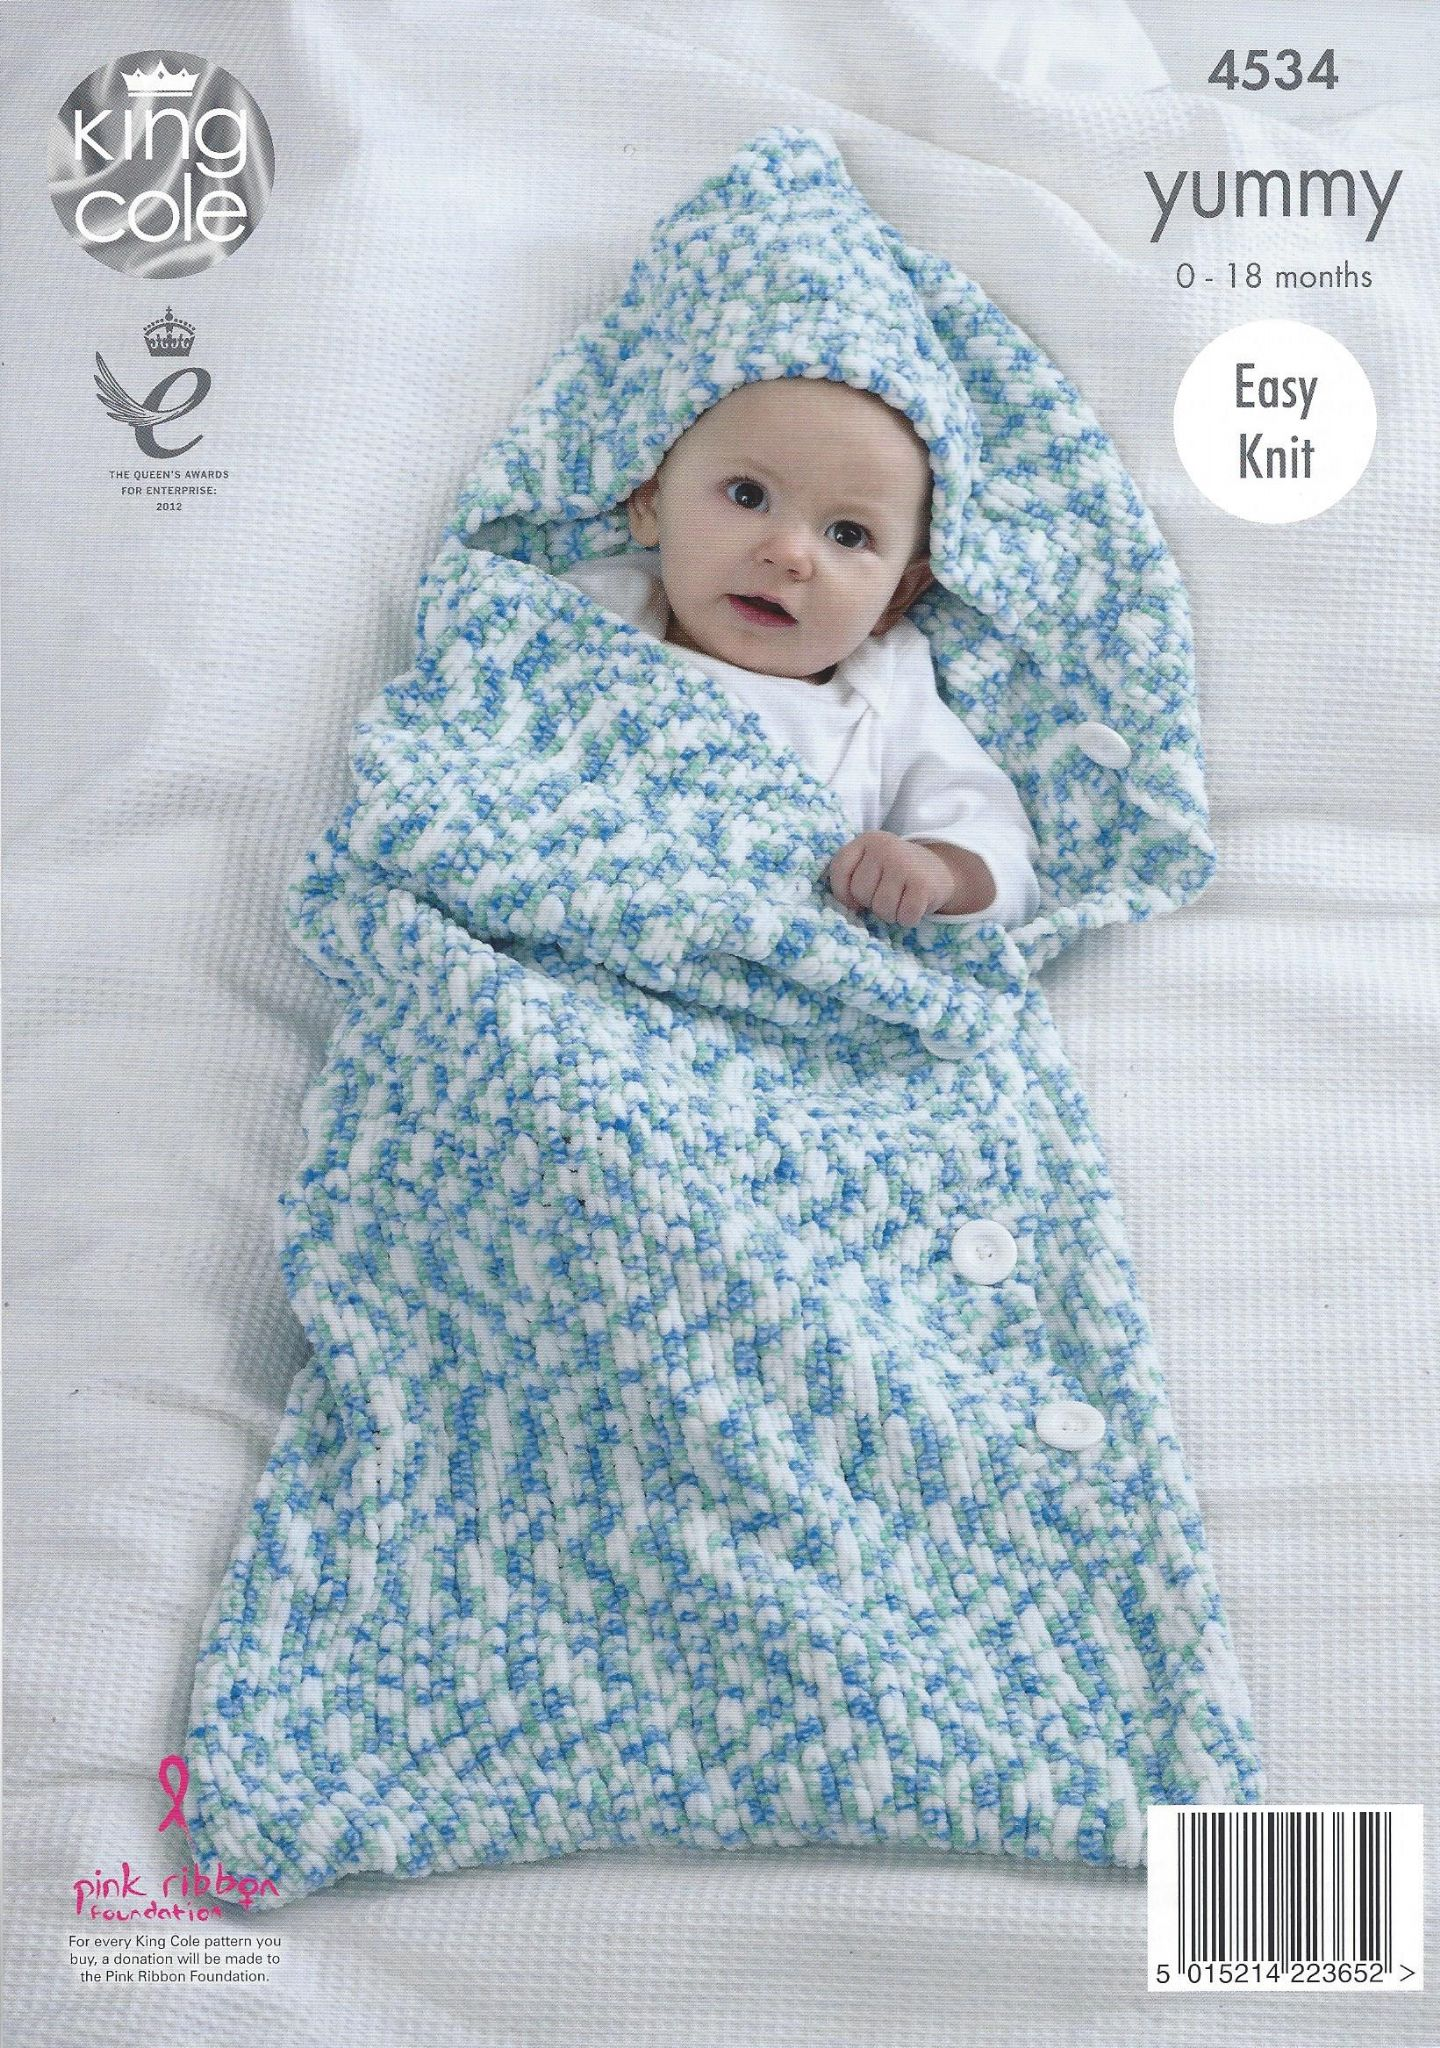 King Cole Yummy - 4534 Cocoon & Blanket Knitting Pattern